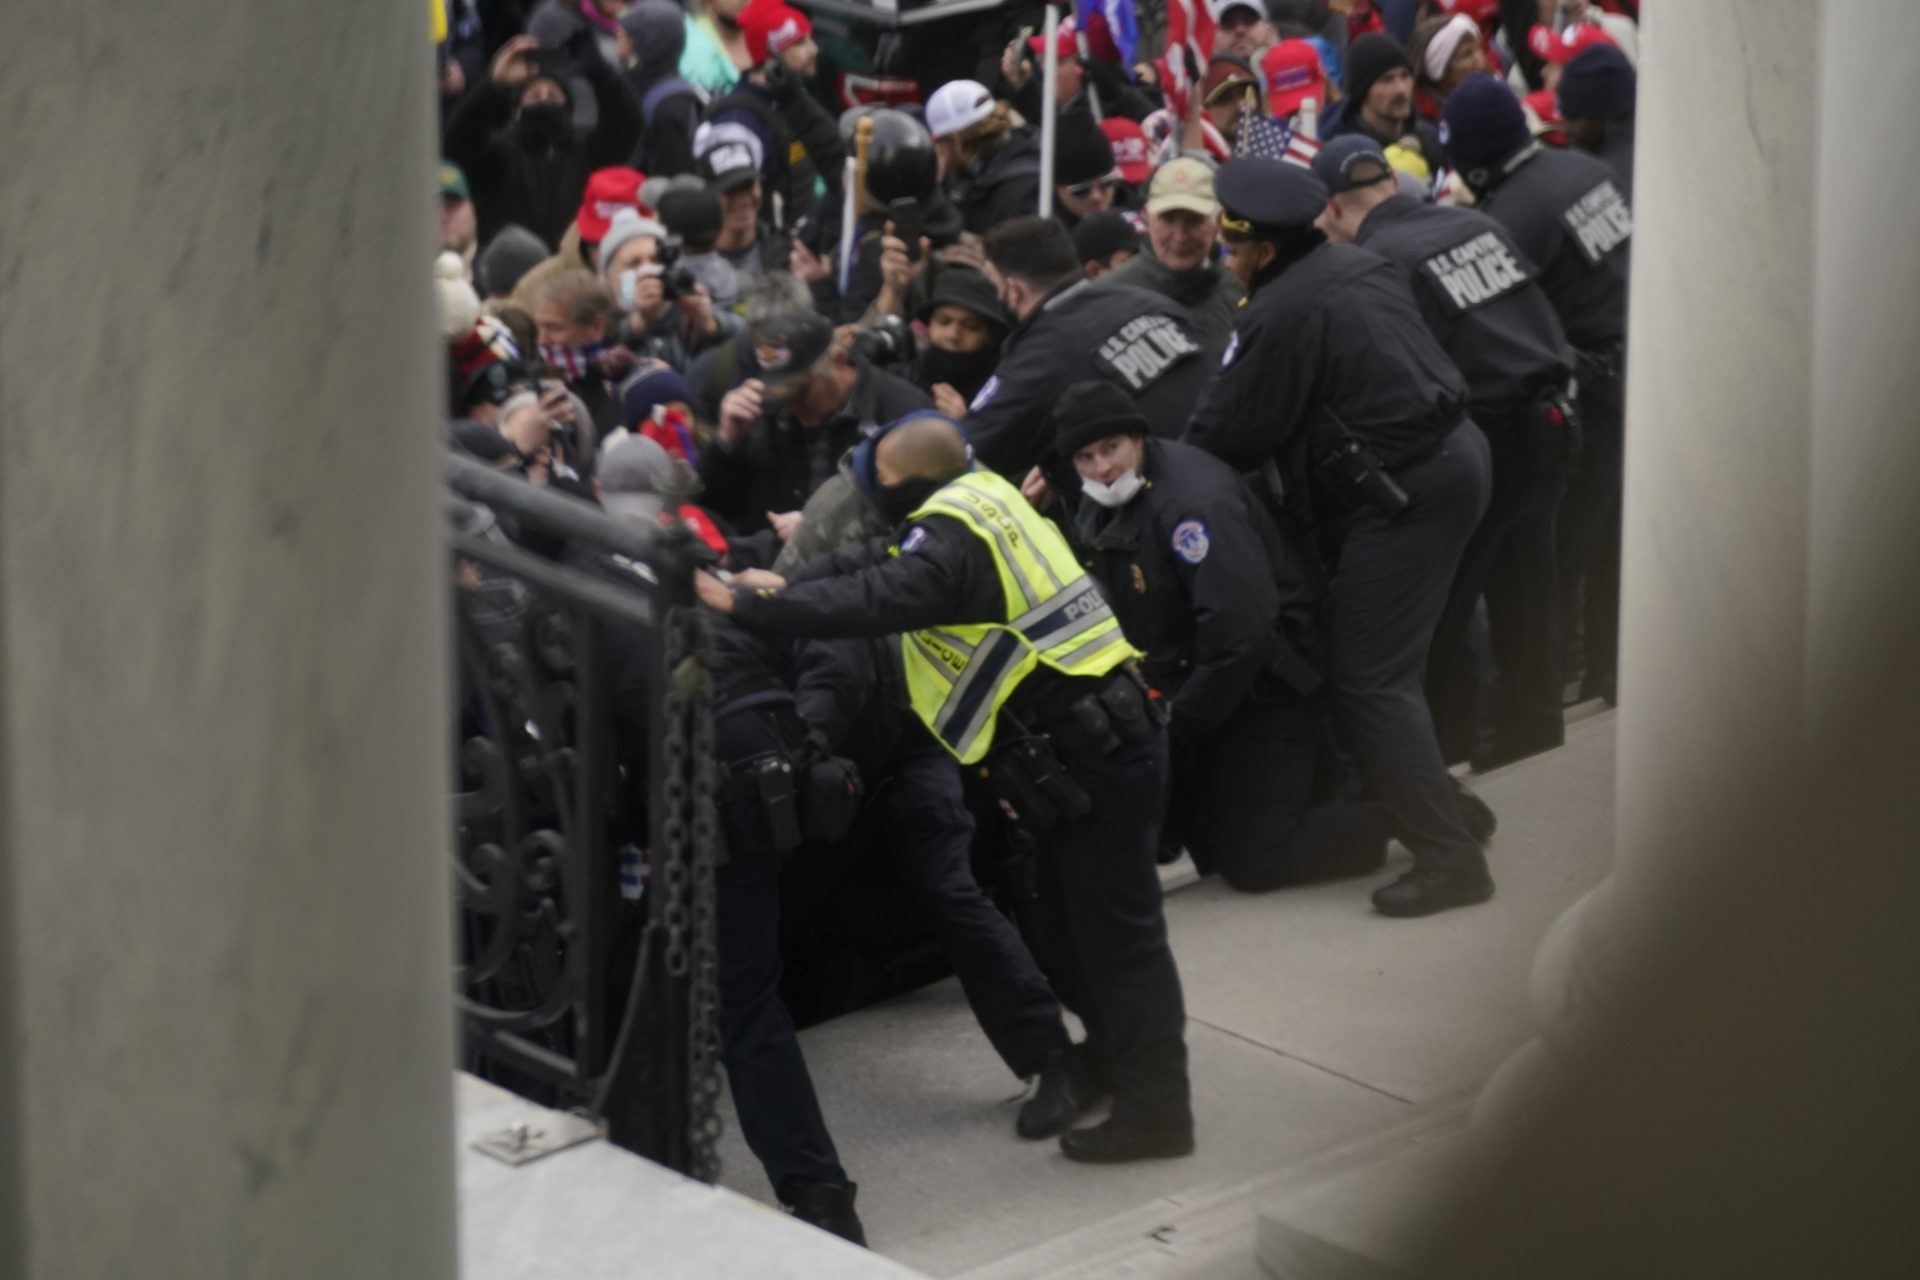 U.S. Capitol Police try to hold back rioters outside the U.S. Capitol, Wednesday, Jan 6, 2021.